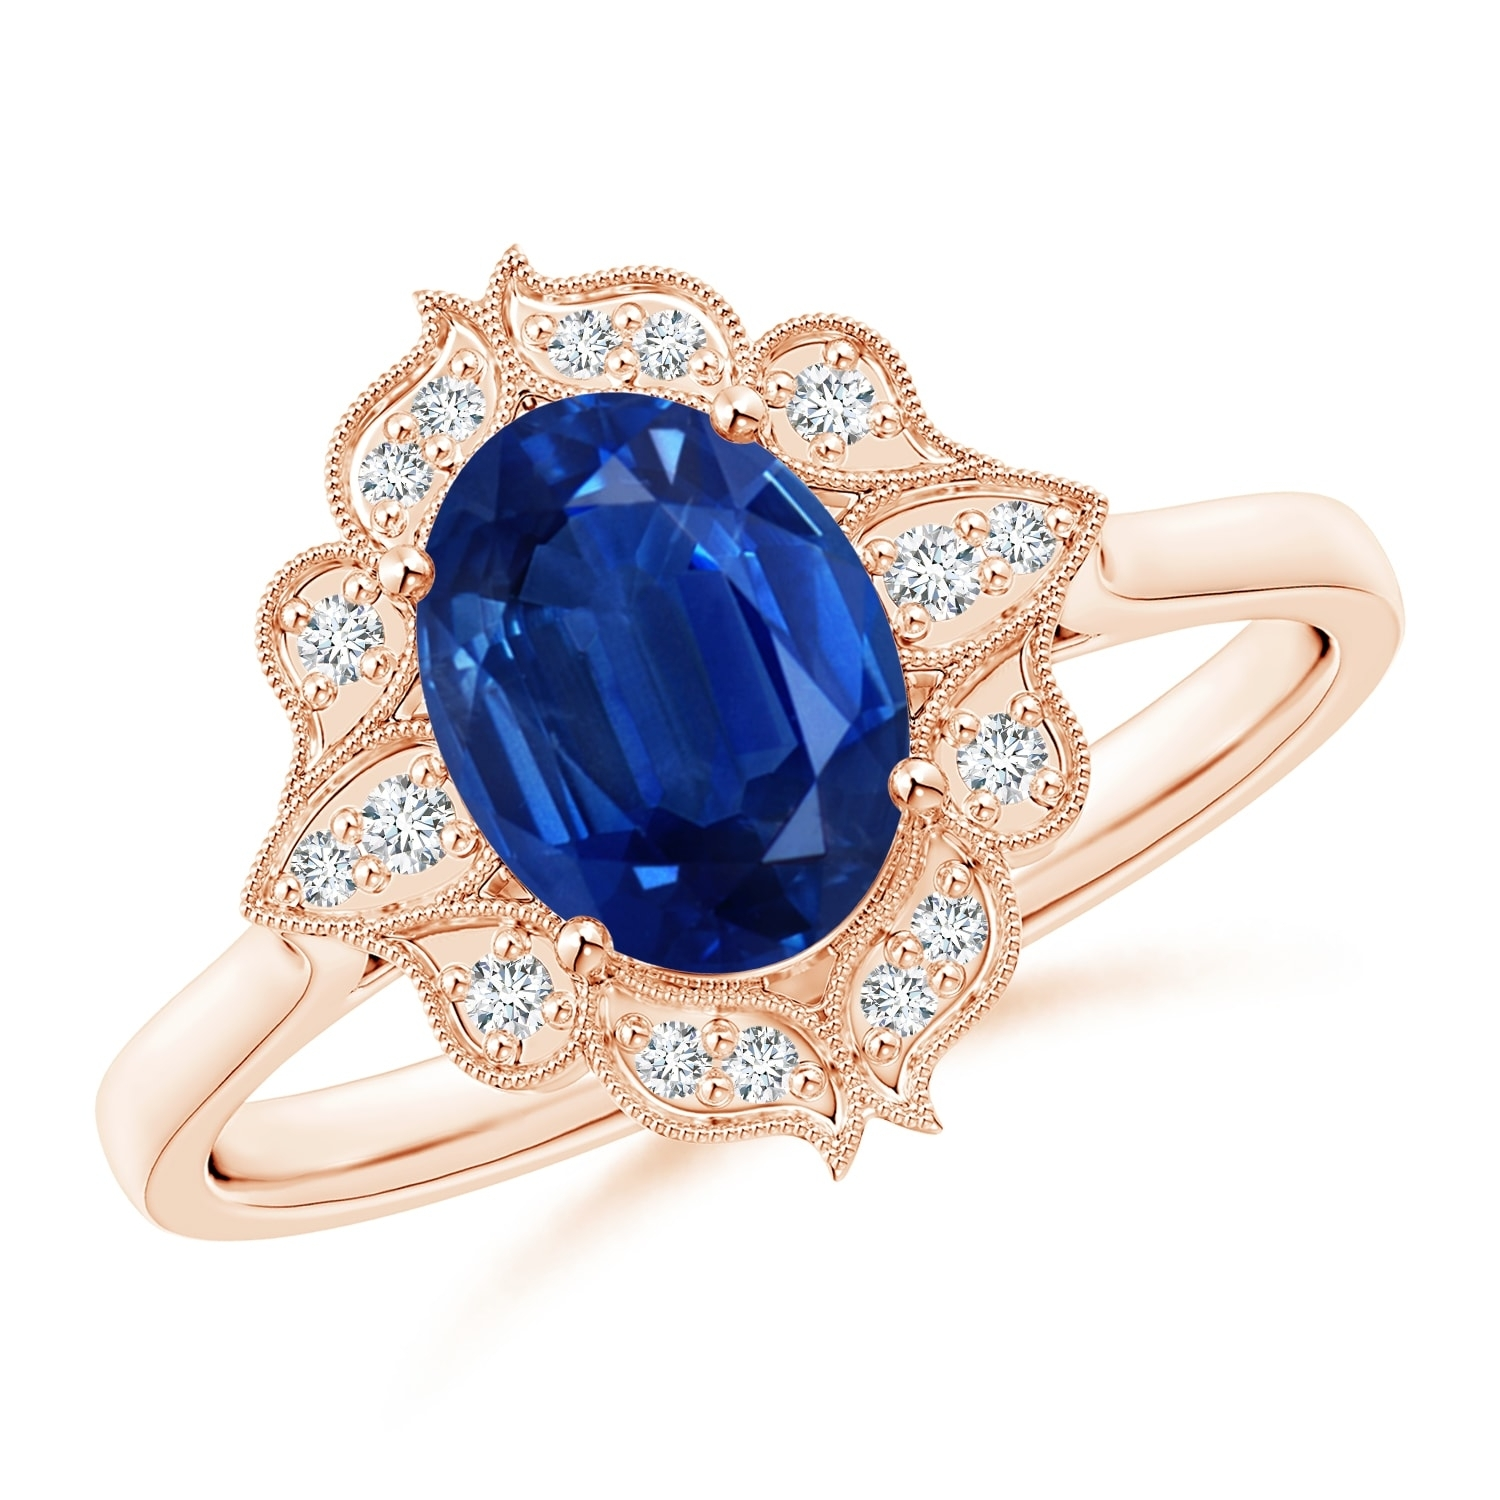 Vintage Style Oval Sapphire Engagement Ring With Floral Halo | Angara Pertaining To Current Vintage Style Sapphire Engagement Rings (View 11 of 15)